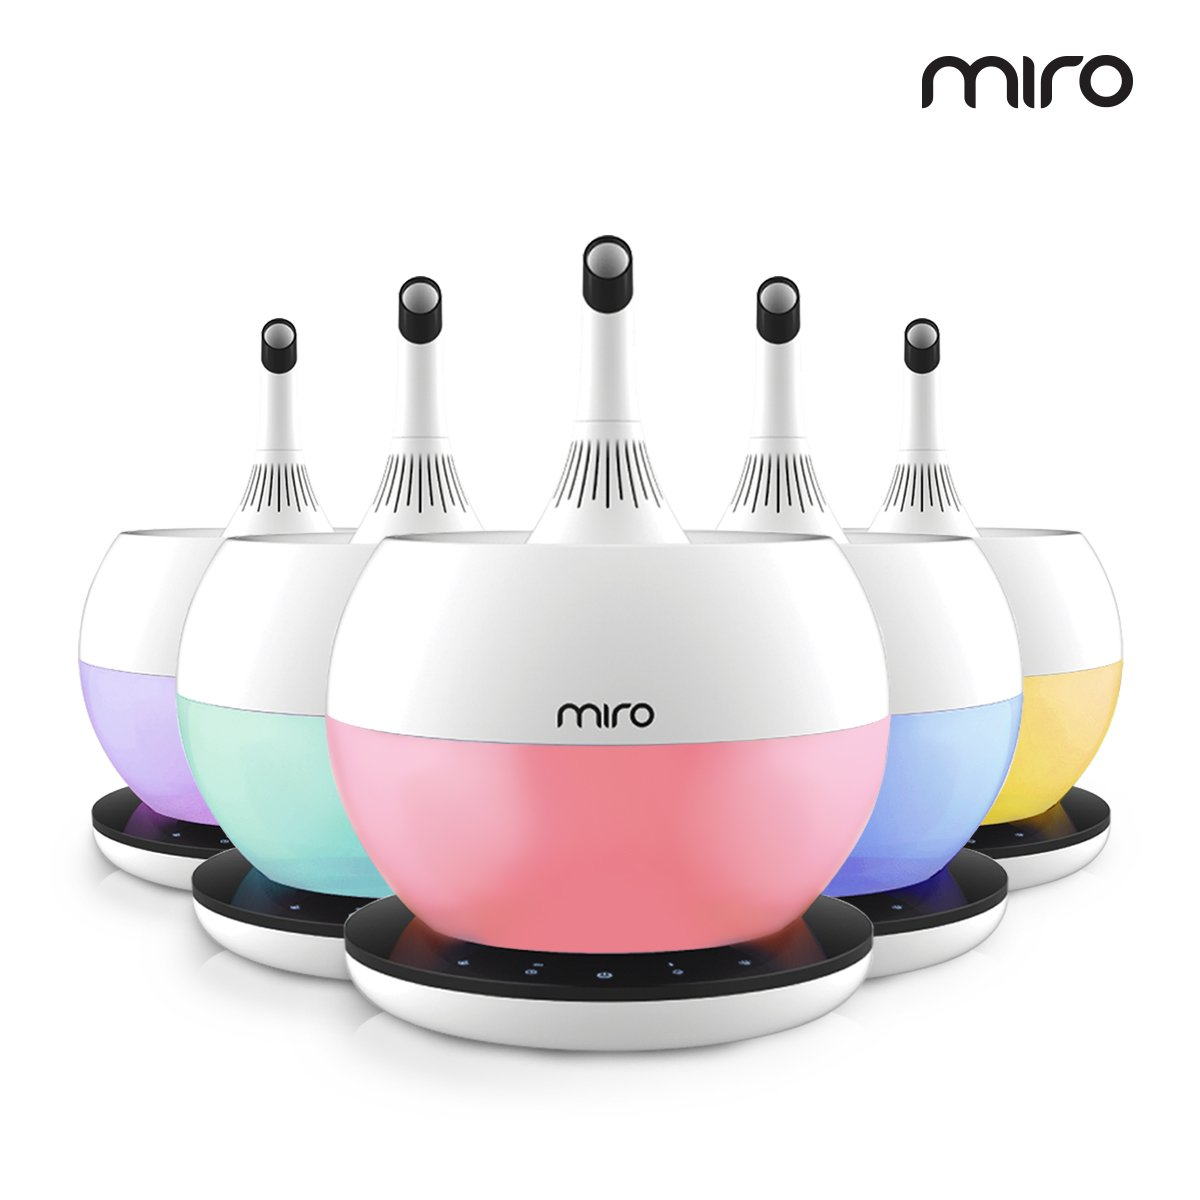 Miro NR-08 ''Luma Touch'' Premium Cool-mist Humidifier. Sanitary, Washable Design, with Aromatherapy Functions, Touch control and Colorful LEDs